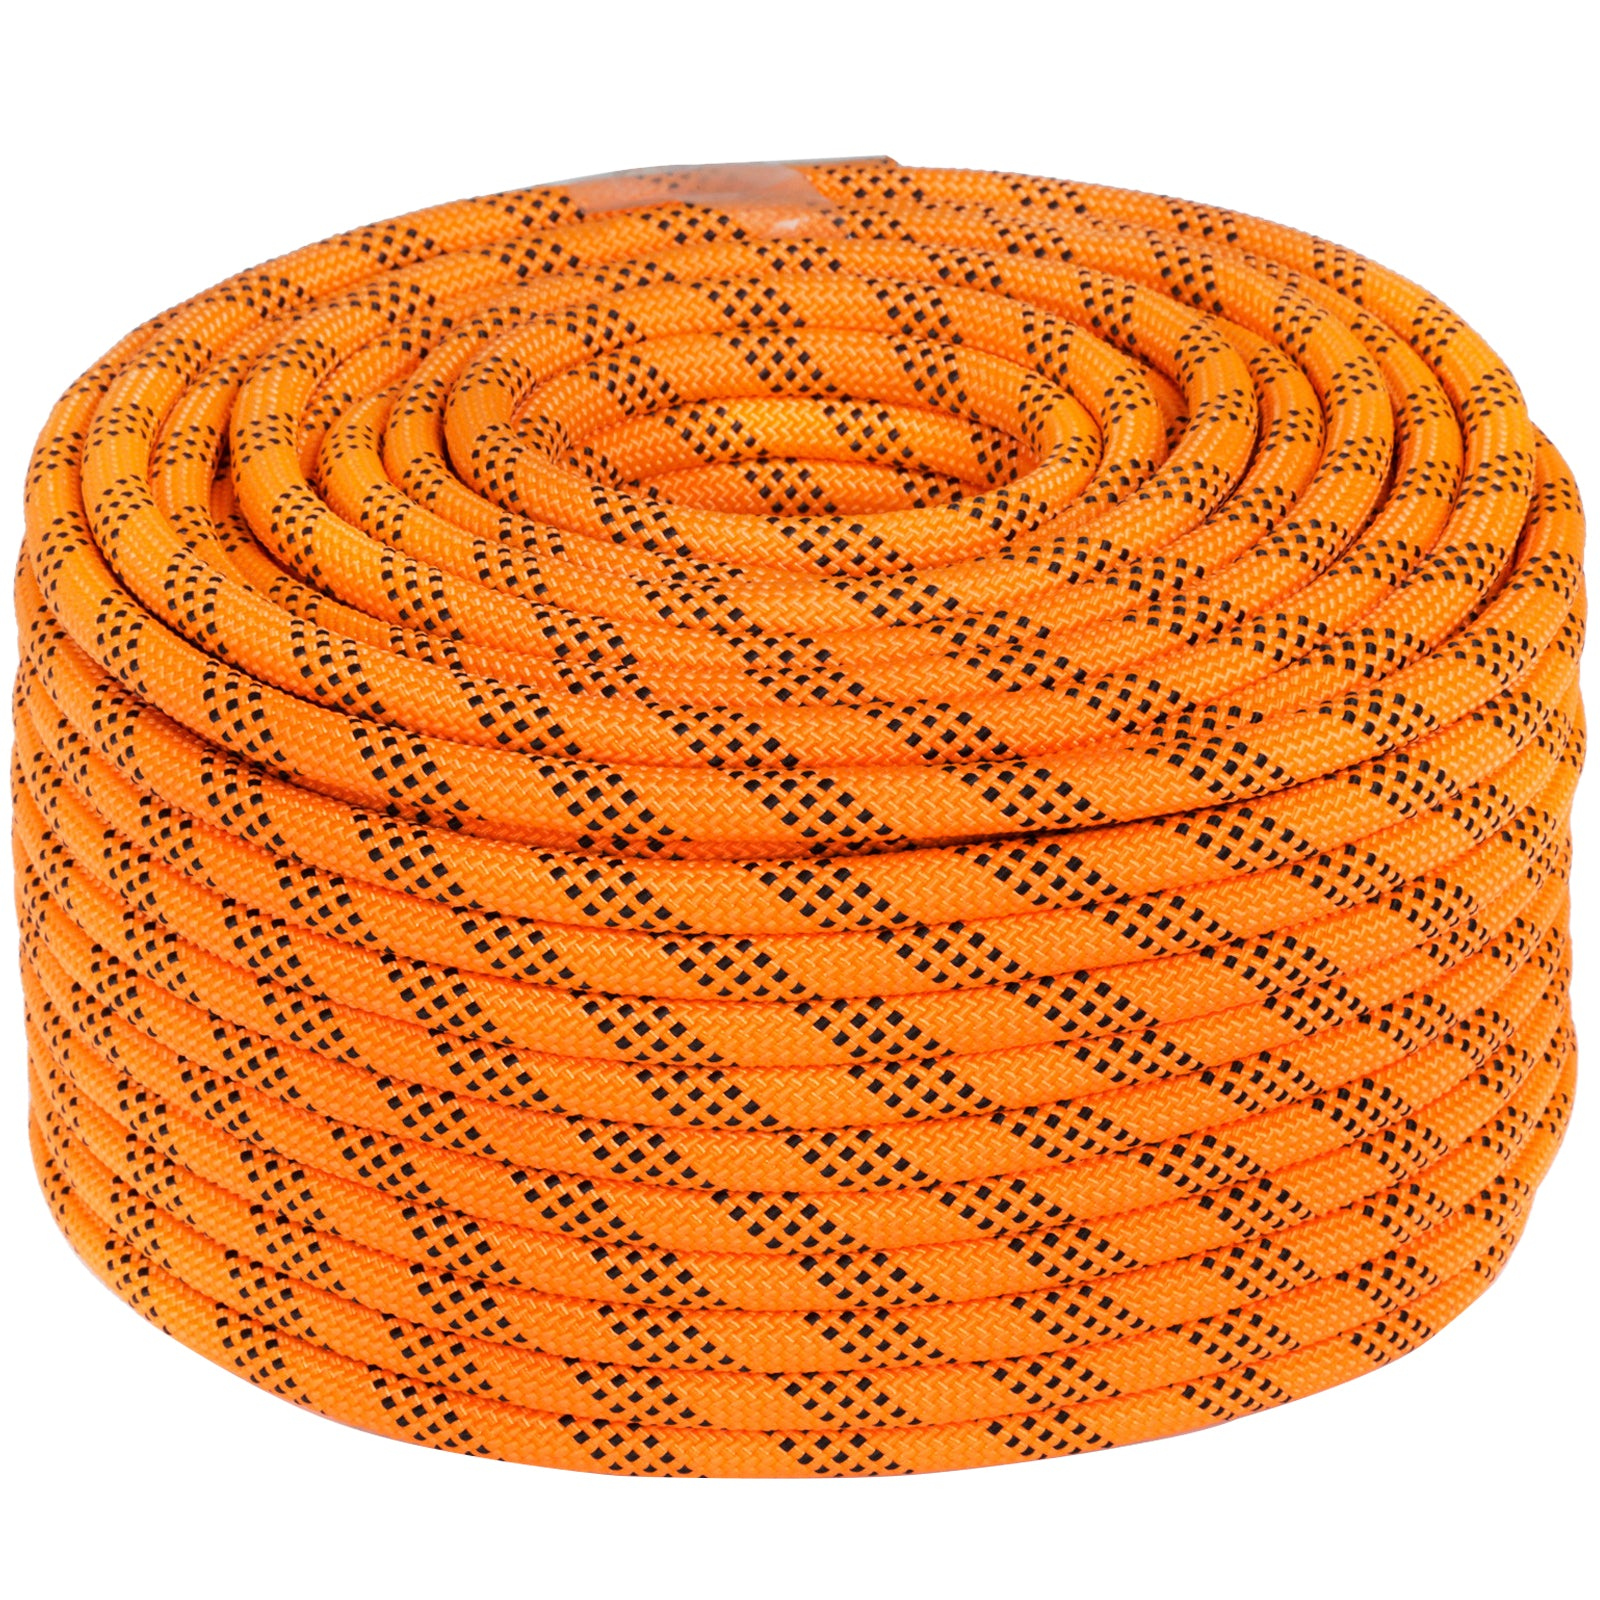 "Polyester Rope 9/16"" X 200',load And Pulling Rope, 8600lbsbreaking Strength(not Suitable For Rocking Climbing, Mountain Climbing, Hanging People, Etc.)"